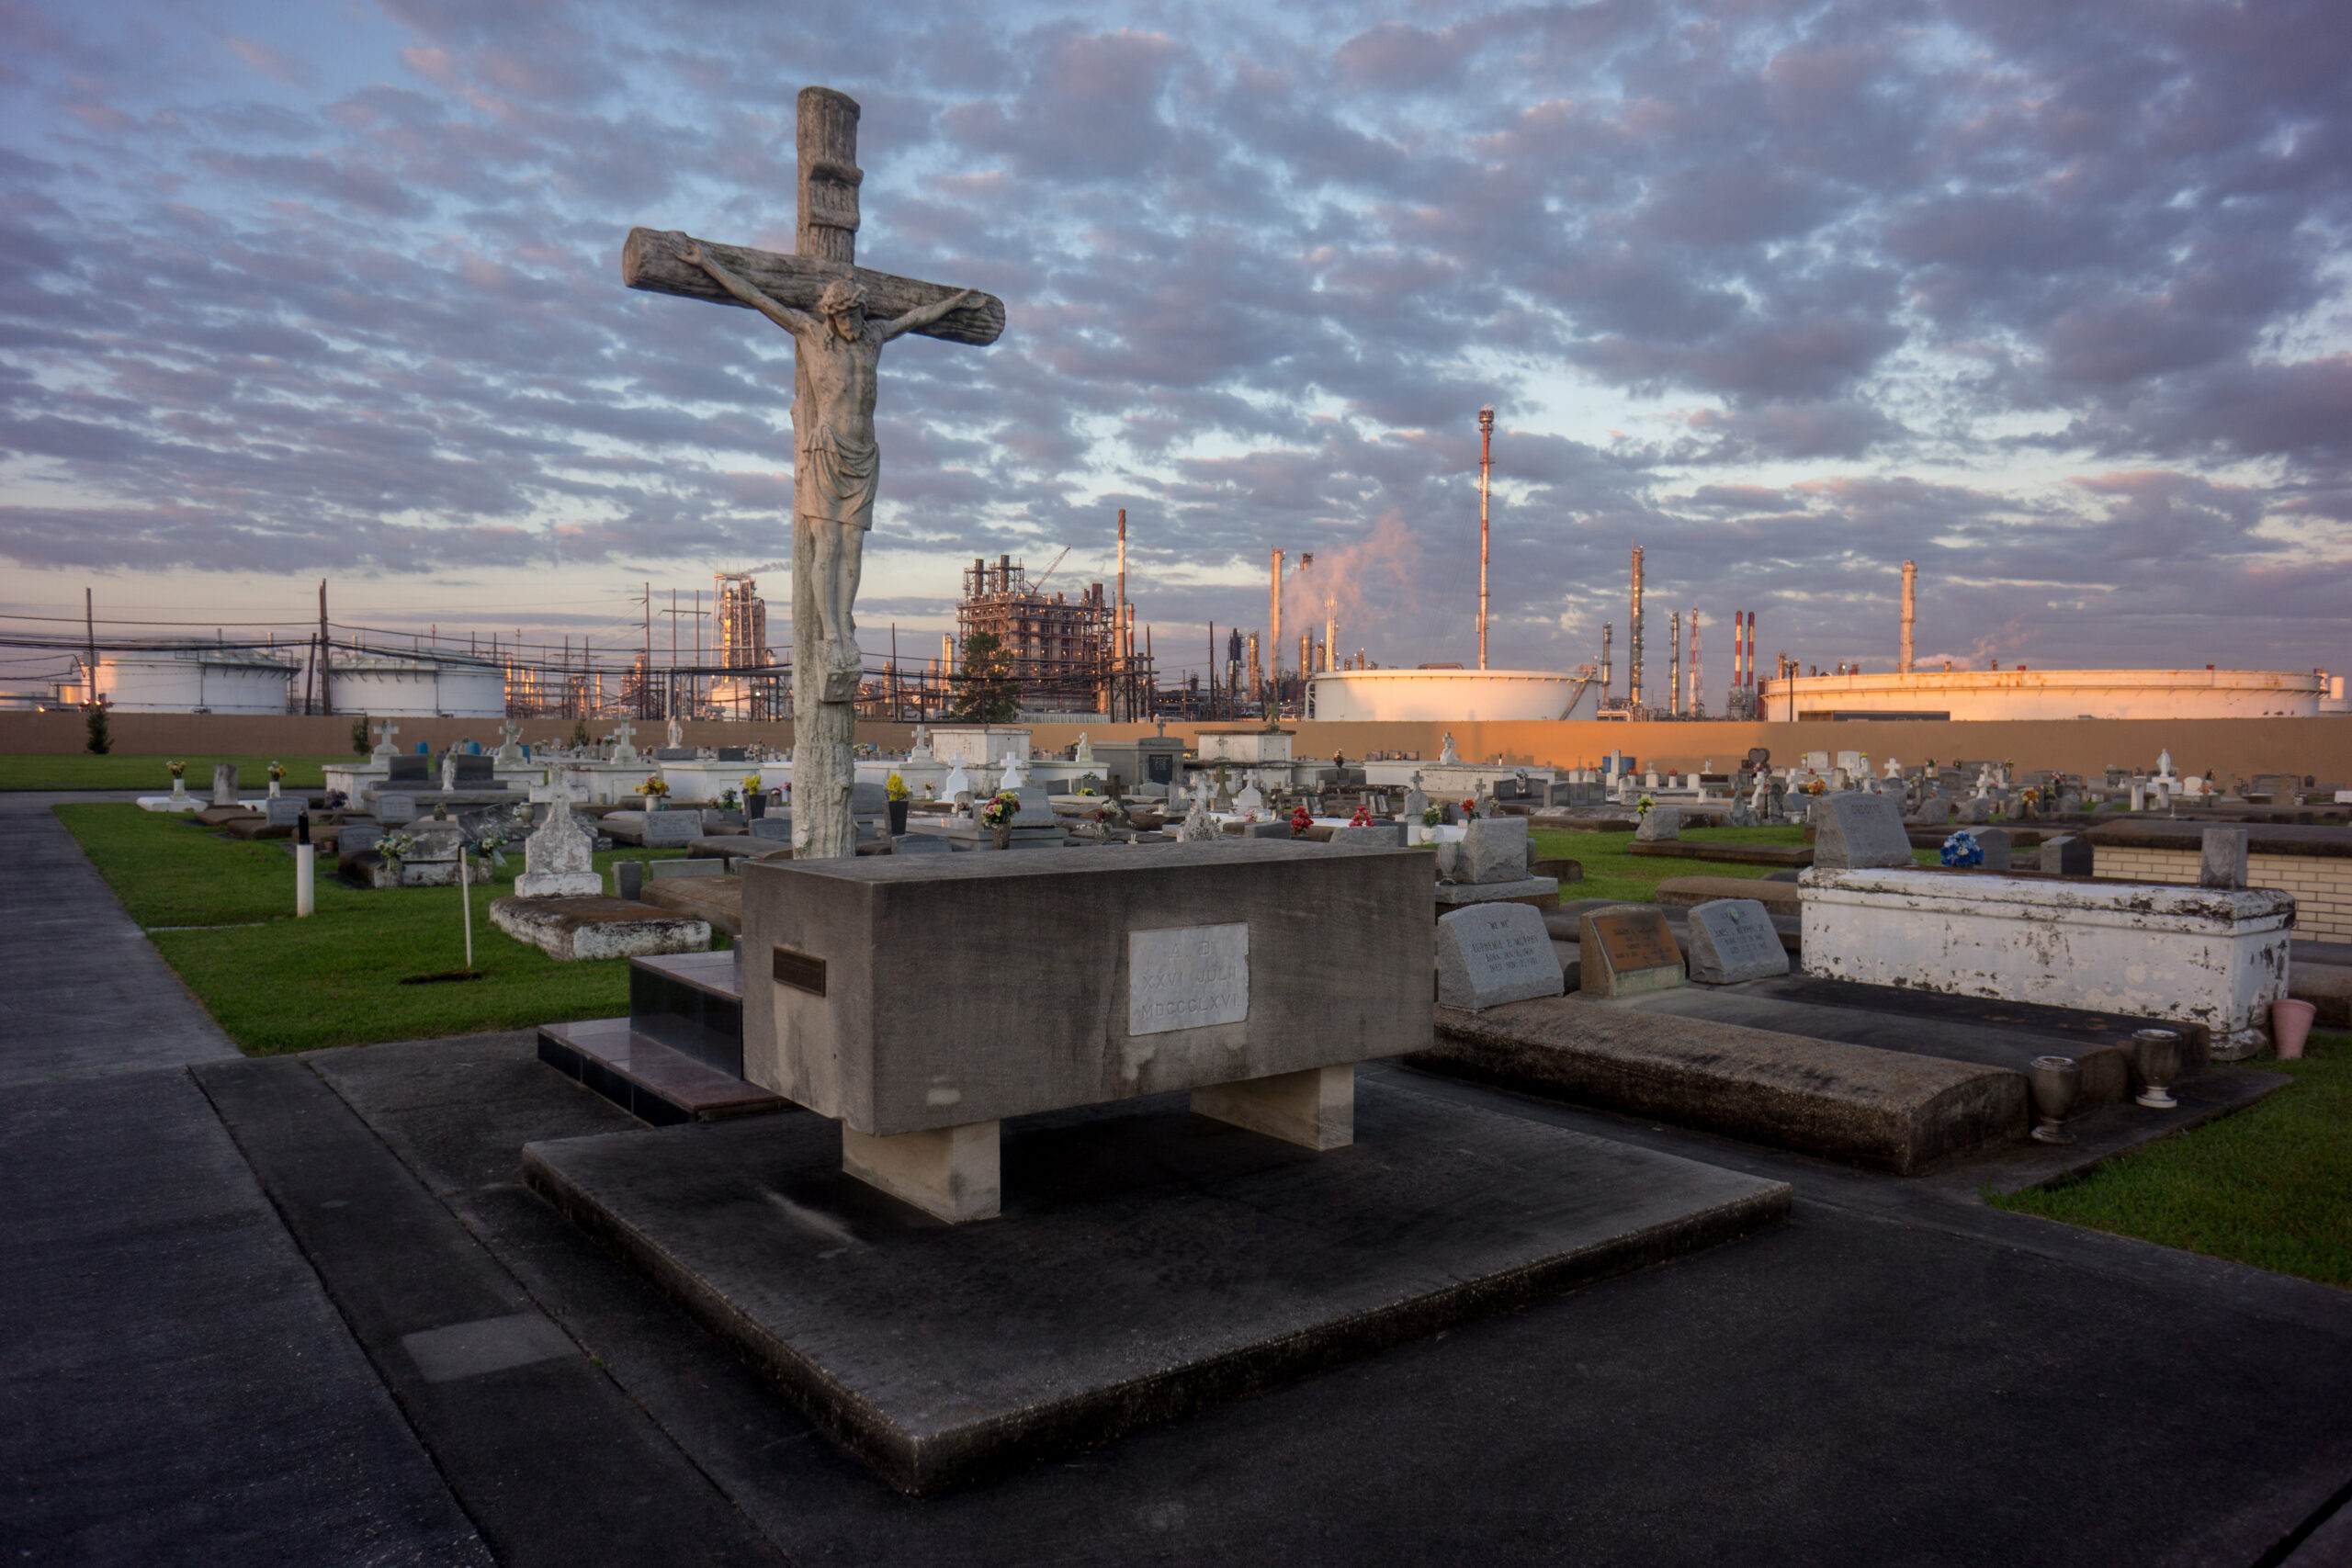 A cemetery stands in stark contrast to the chemical plants that surround it on Oct. 15, 2013. 'Cancer Alley' is one of the most polluted areas of the United States and lies along the once pristine Mississippi River that stretches some 80 miles from New Orleans to Baton Rouge, where a dense concentration of oil refineries, petrochemical plants, and other chemical industries reside alongside suburban homes. Credit: Giles Clarke/Getty Images